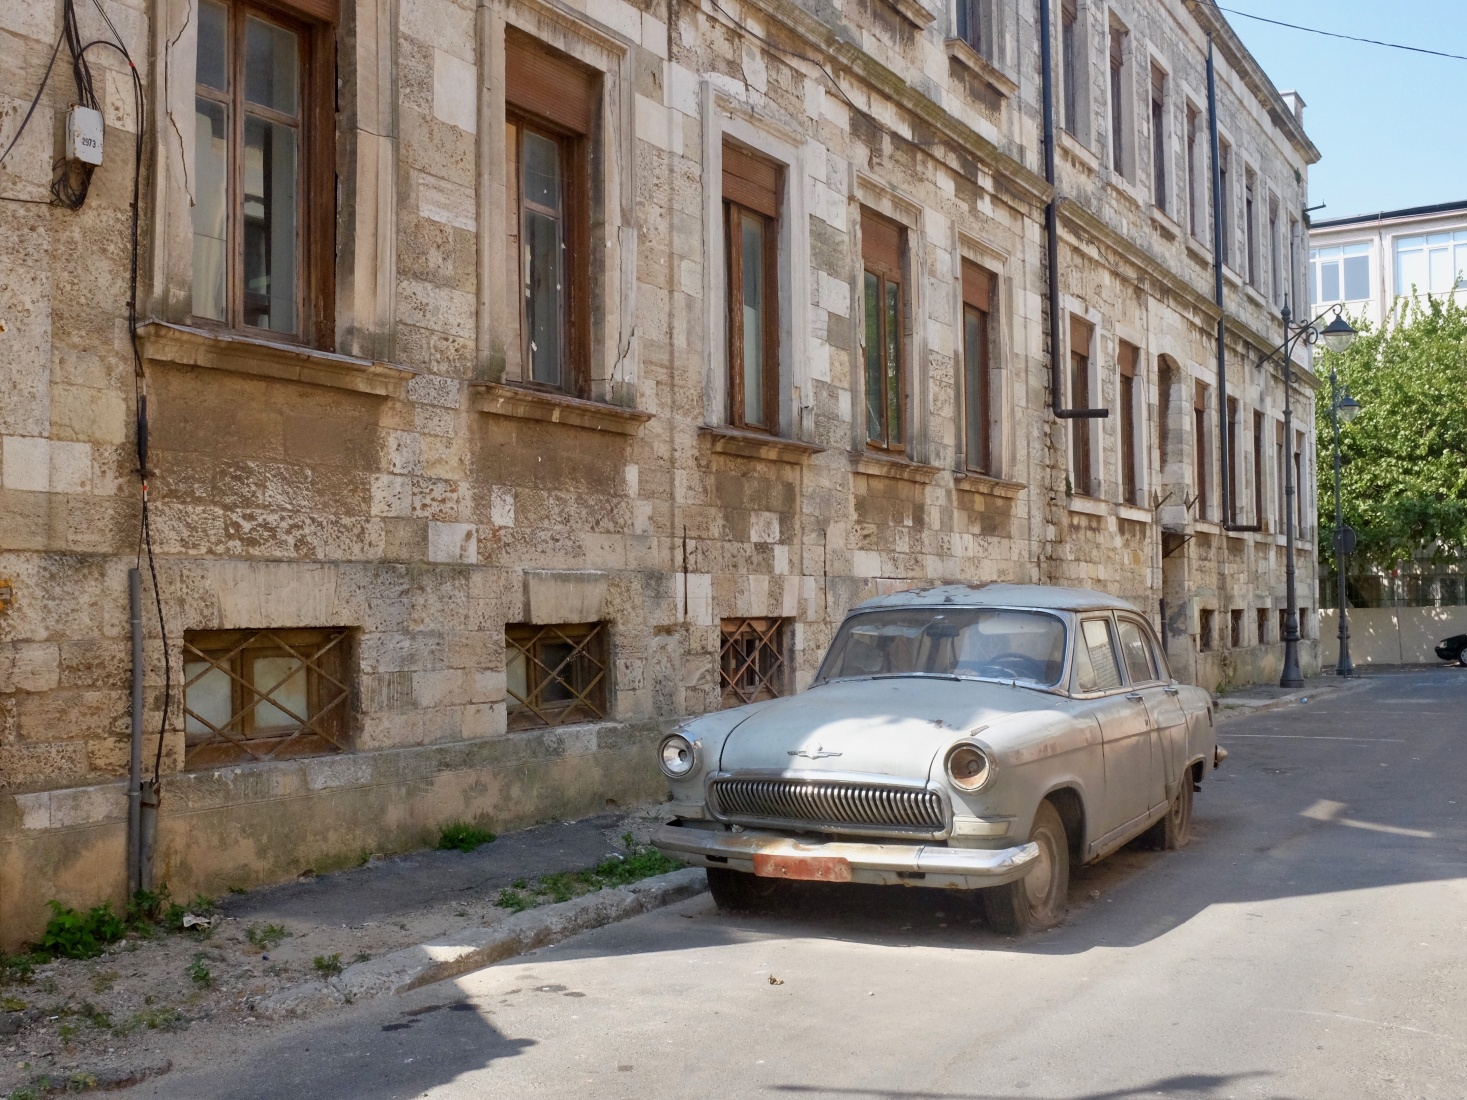 An old car and empty street near the old port in Constanța, Romania.